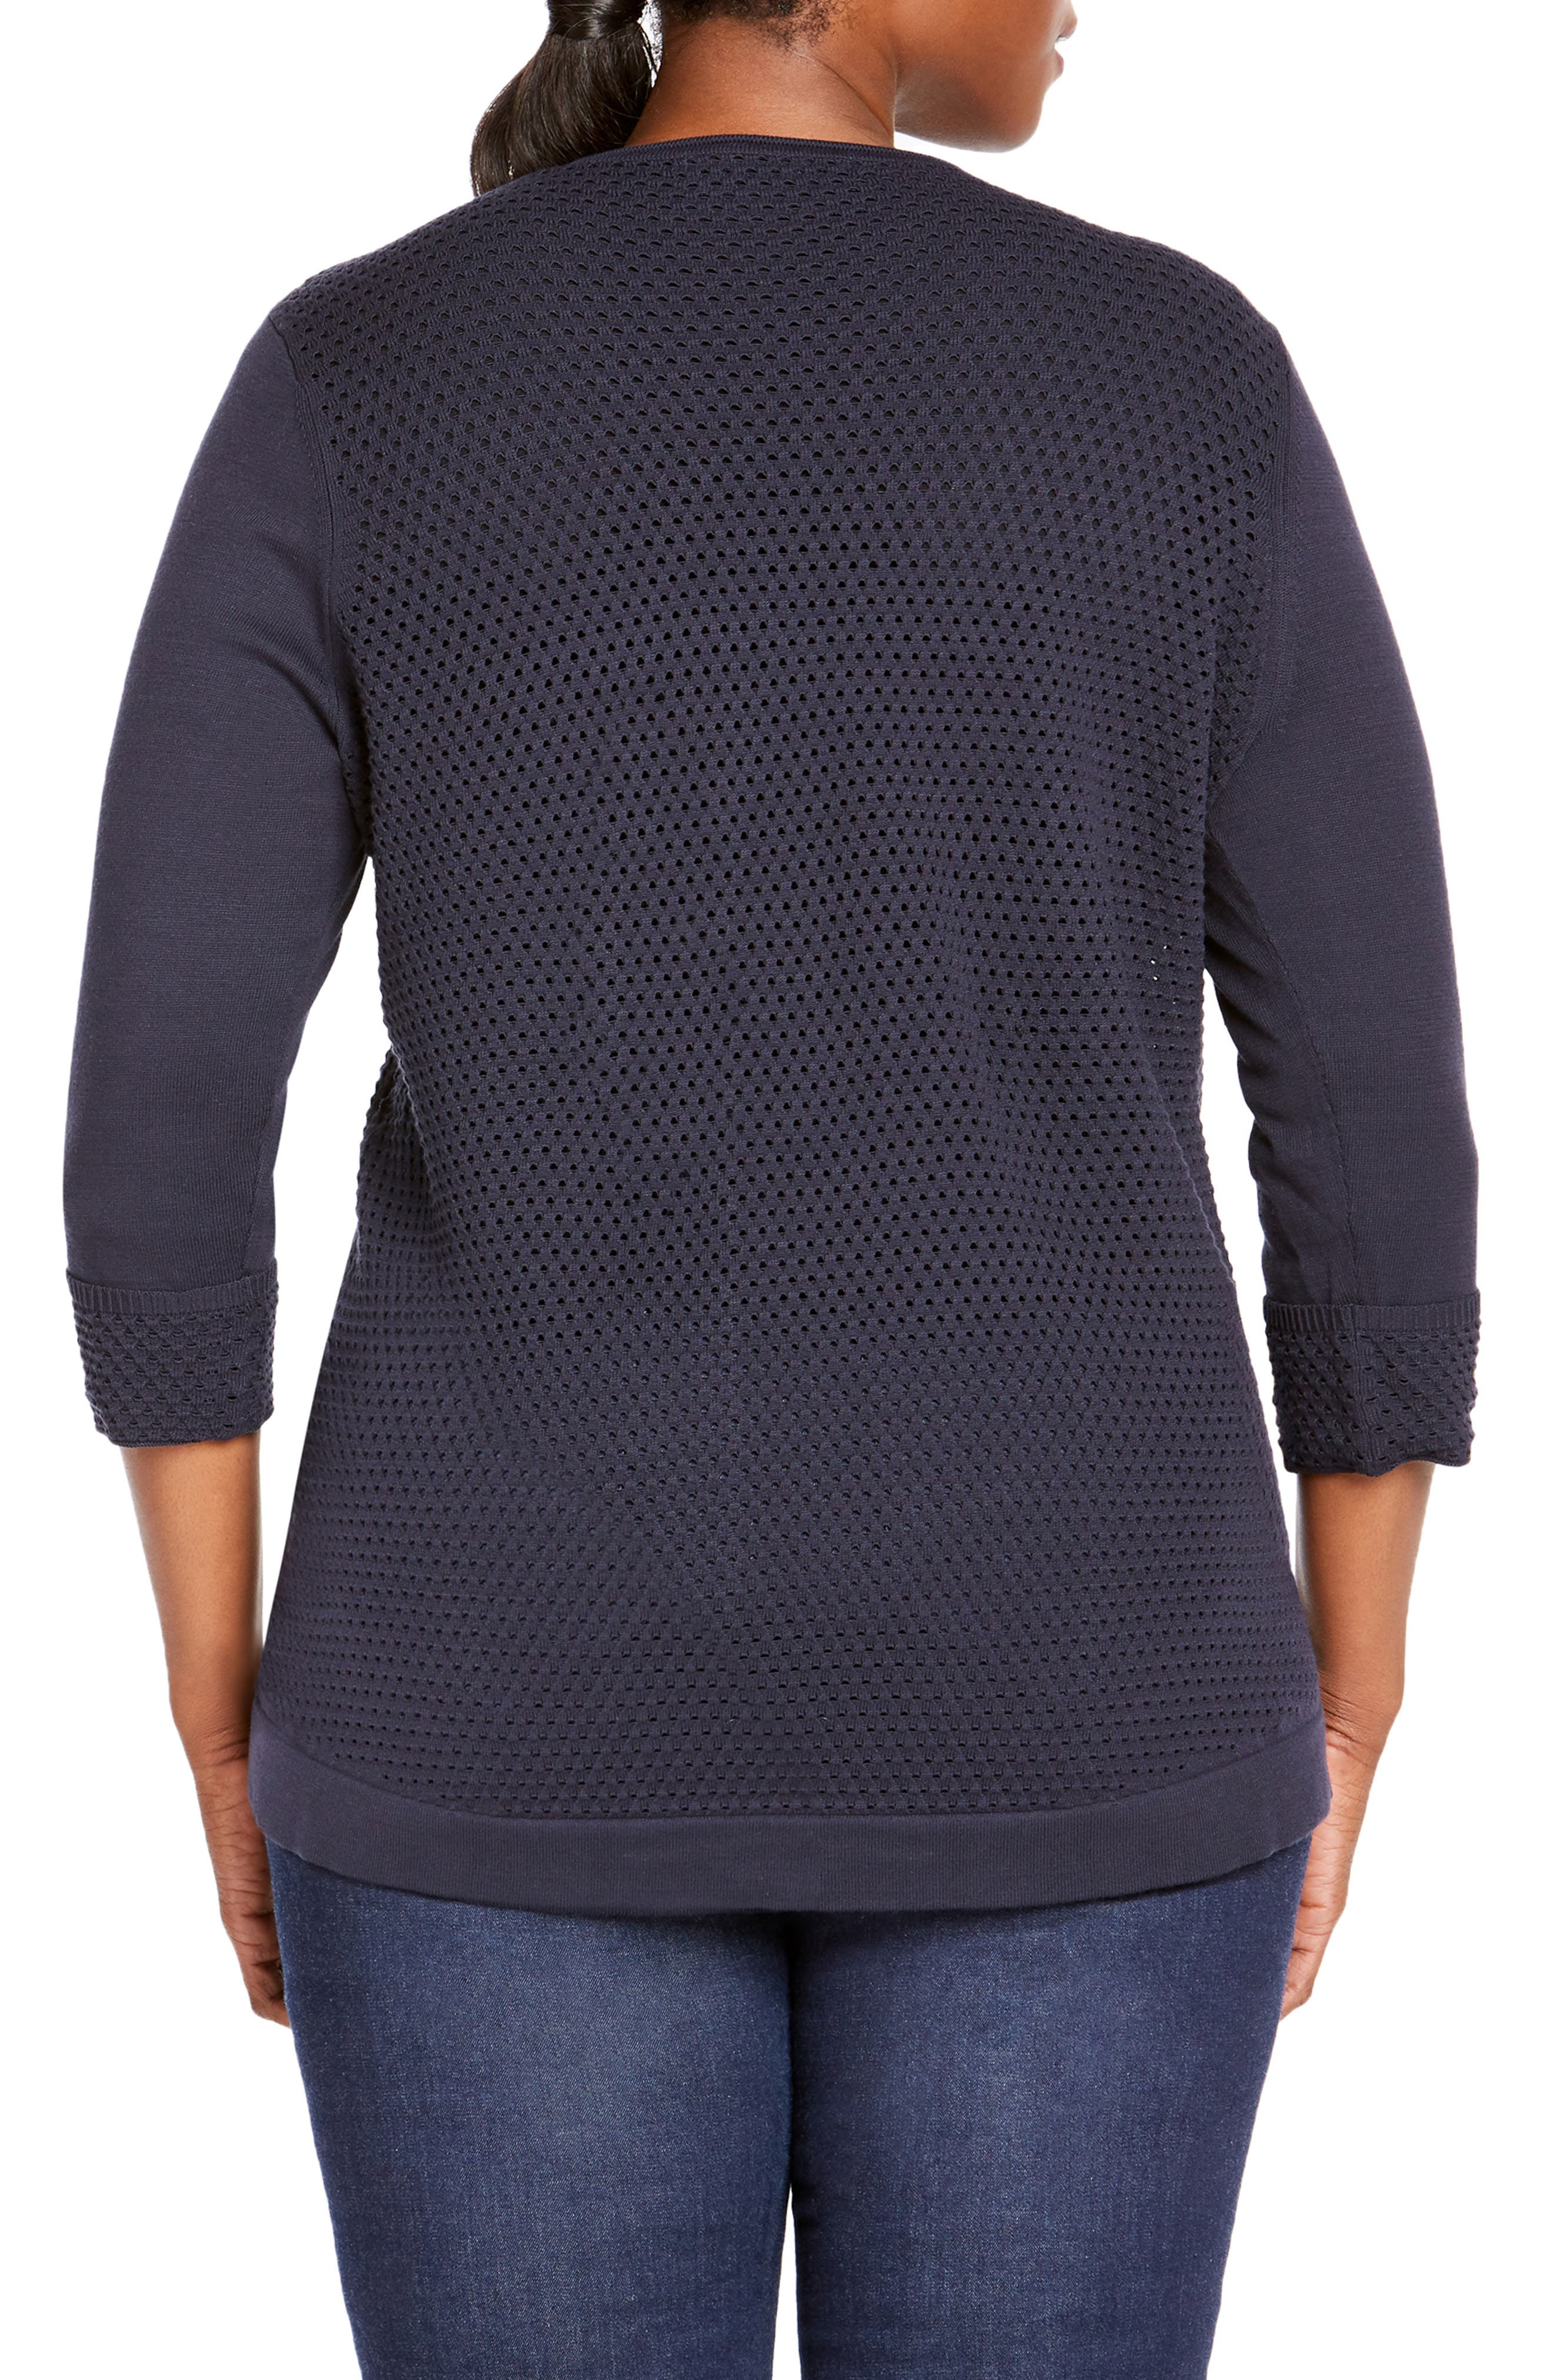 FOXCROFT,                             Presley Perforated Stitch Sweater,                             Alternate thumbnail 2, color,                             NAVY